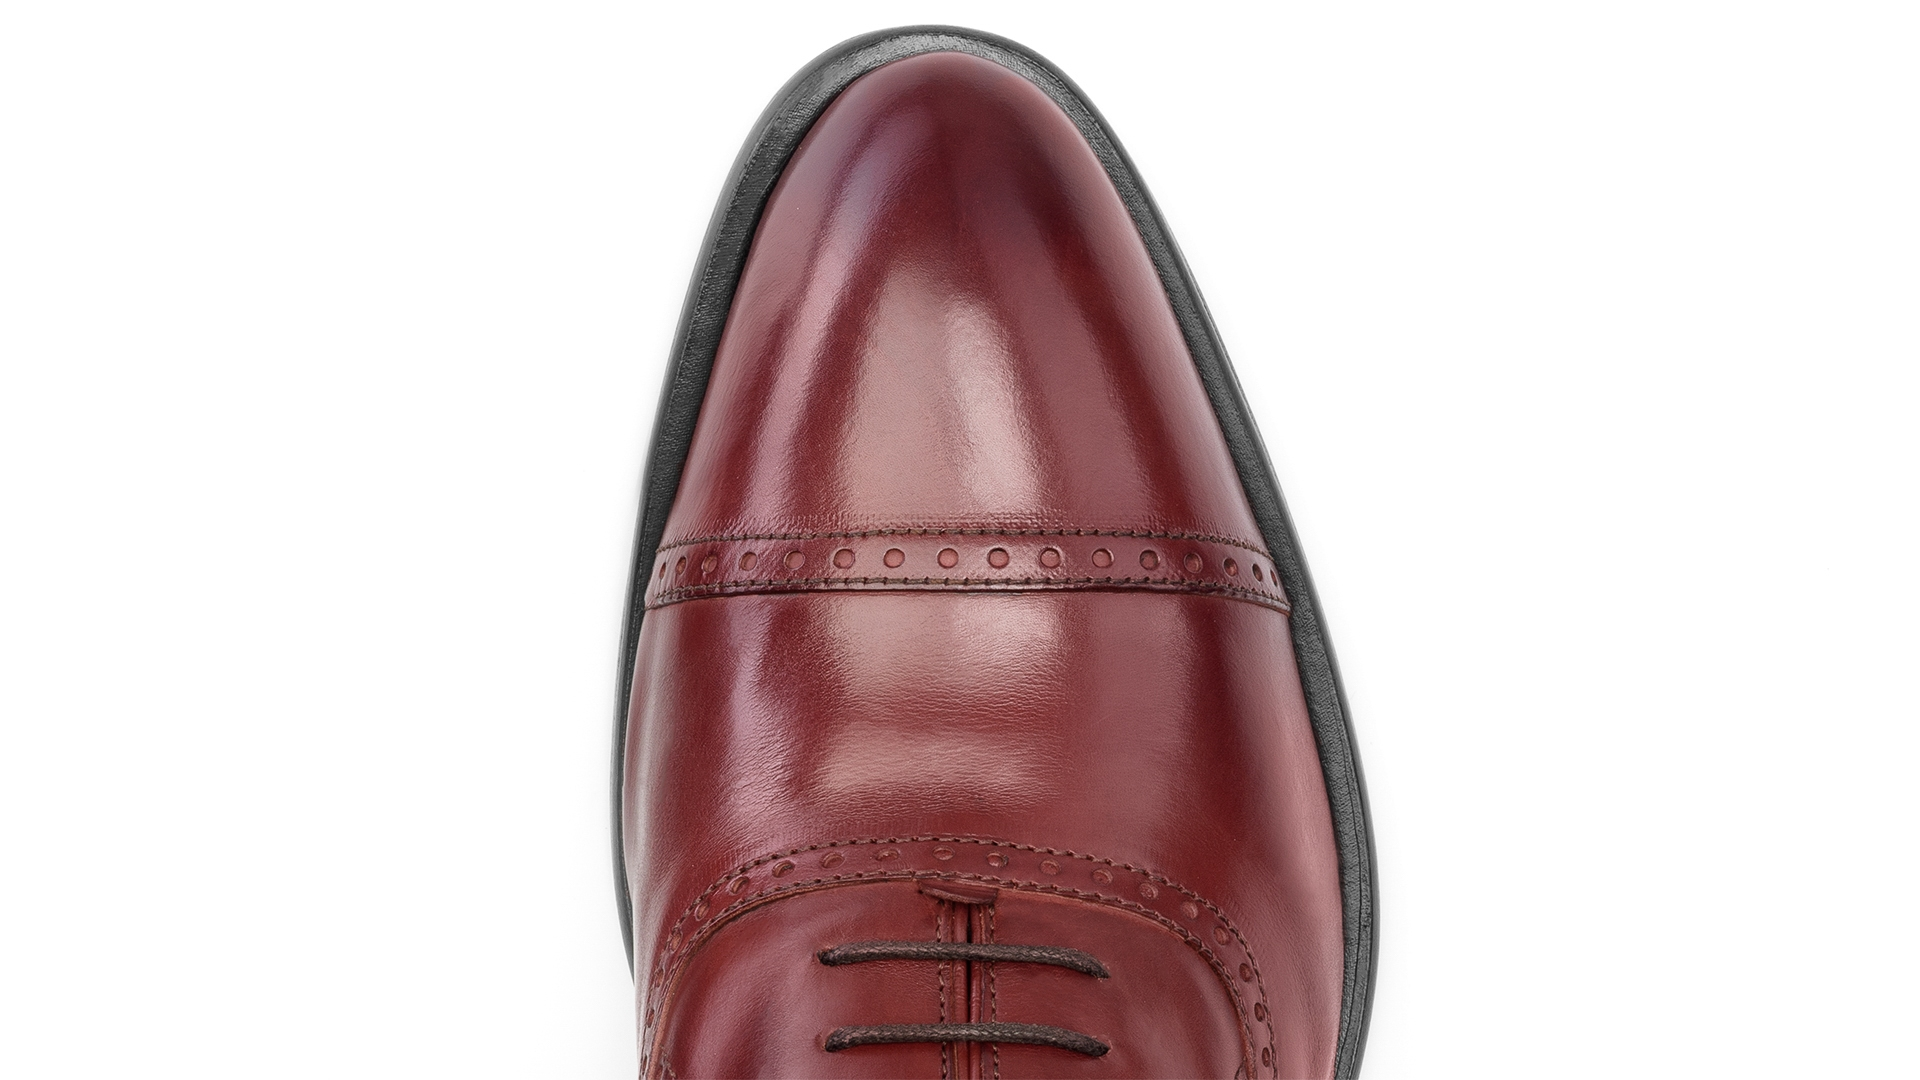 SEMI BROGUE Sacchetto Bolognese Bordo